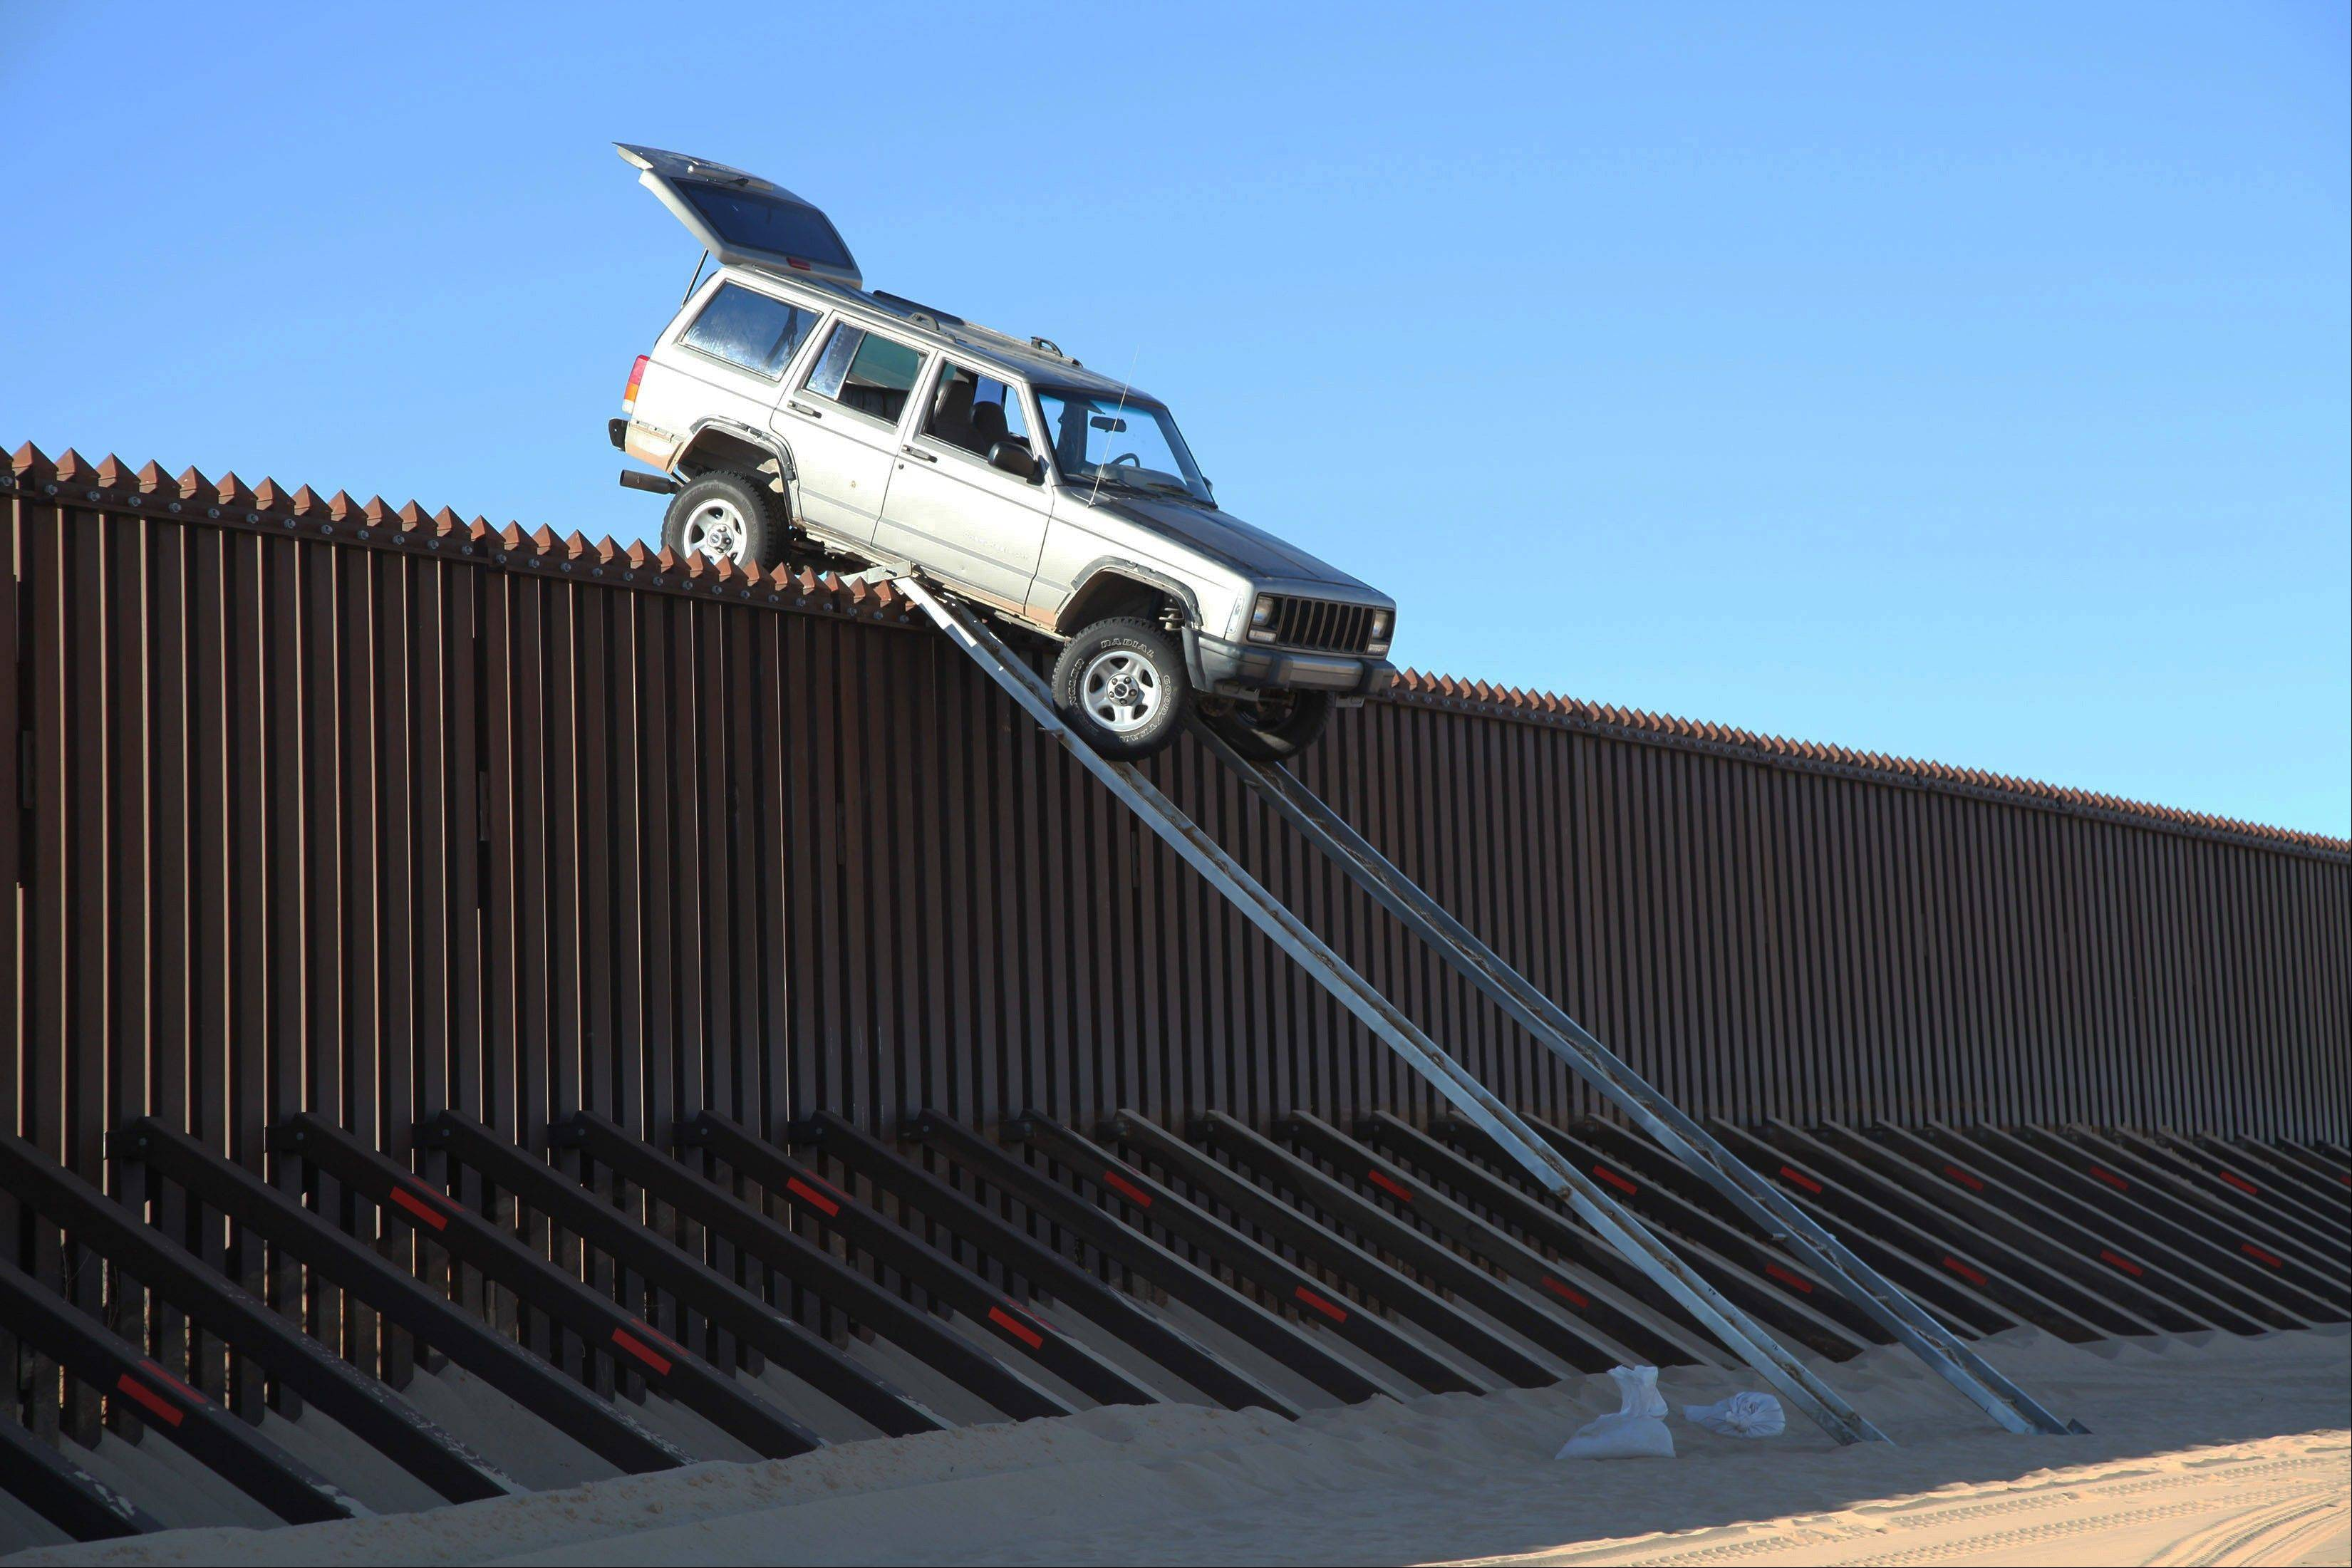 A Jeep Cherokee that suspected smugglers were attempting to drive over the U.S.-Mexico border fence got stuck at the top of a makeshift ramp early Wednesday near Yuma, Ariz.